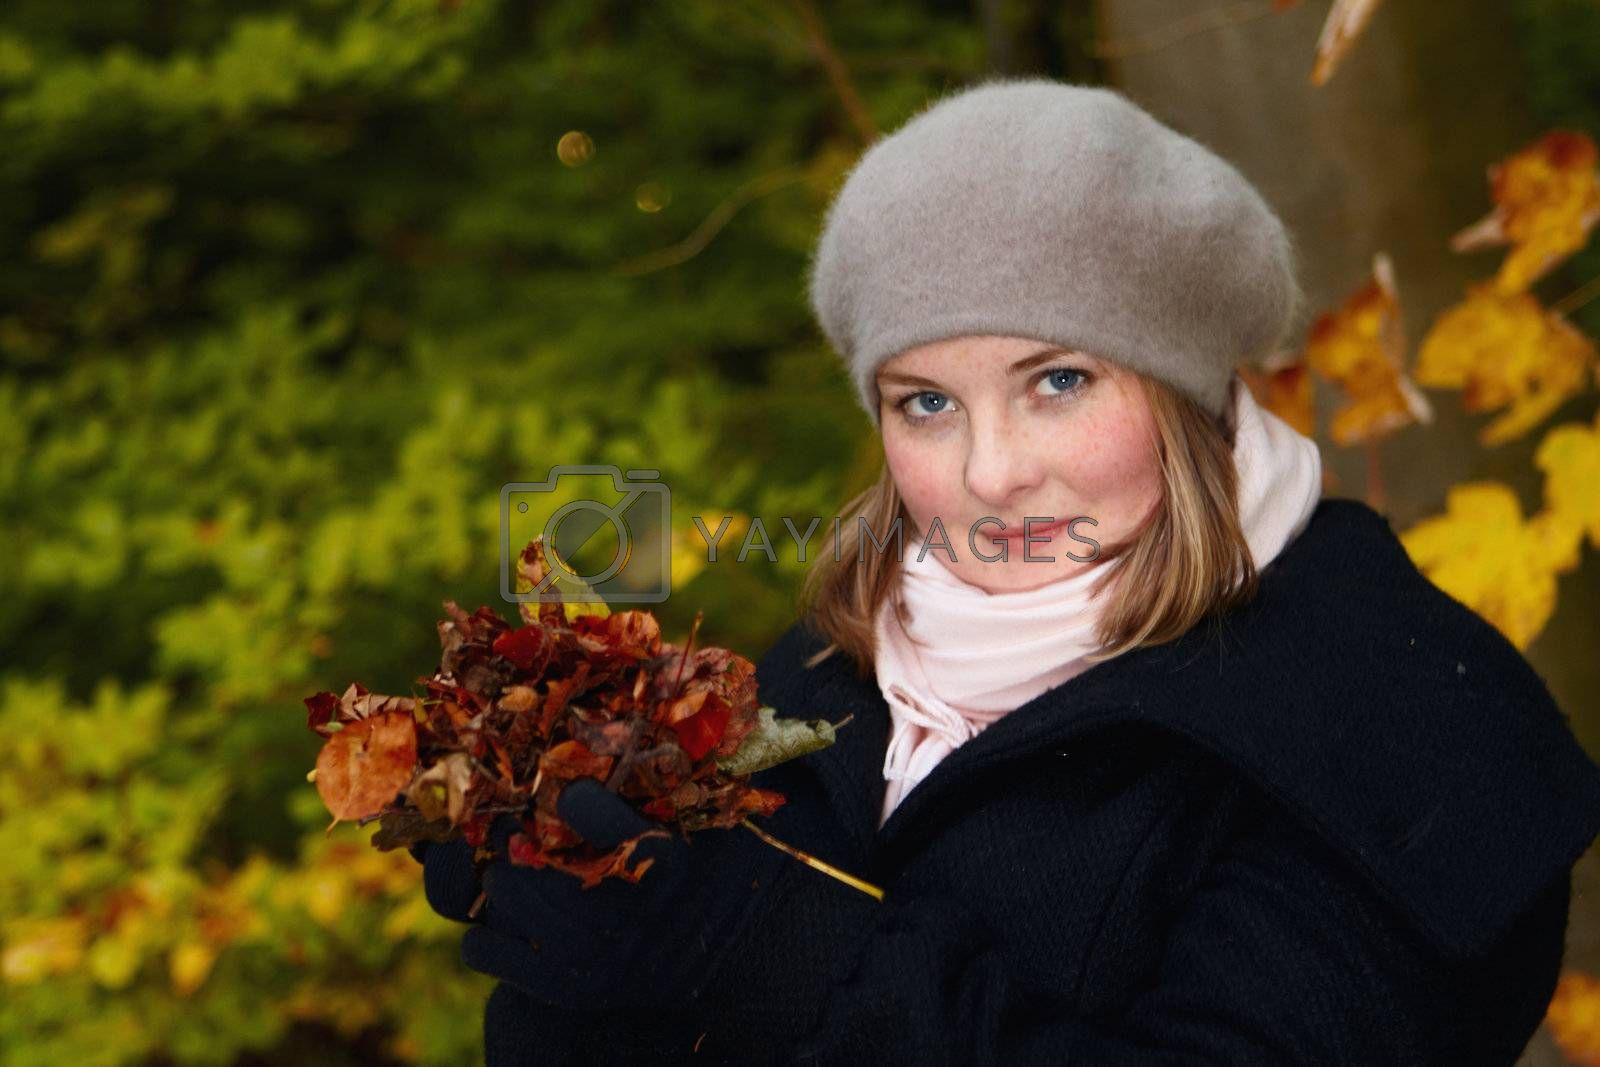 Royalty free image of Autumn - Cute young woman holding leaves by FreedomImage